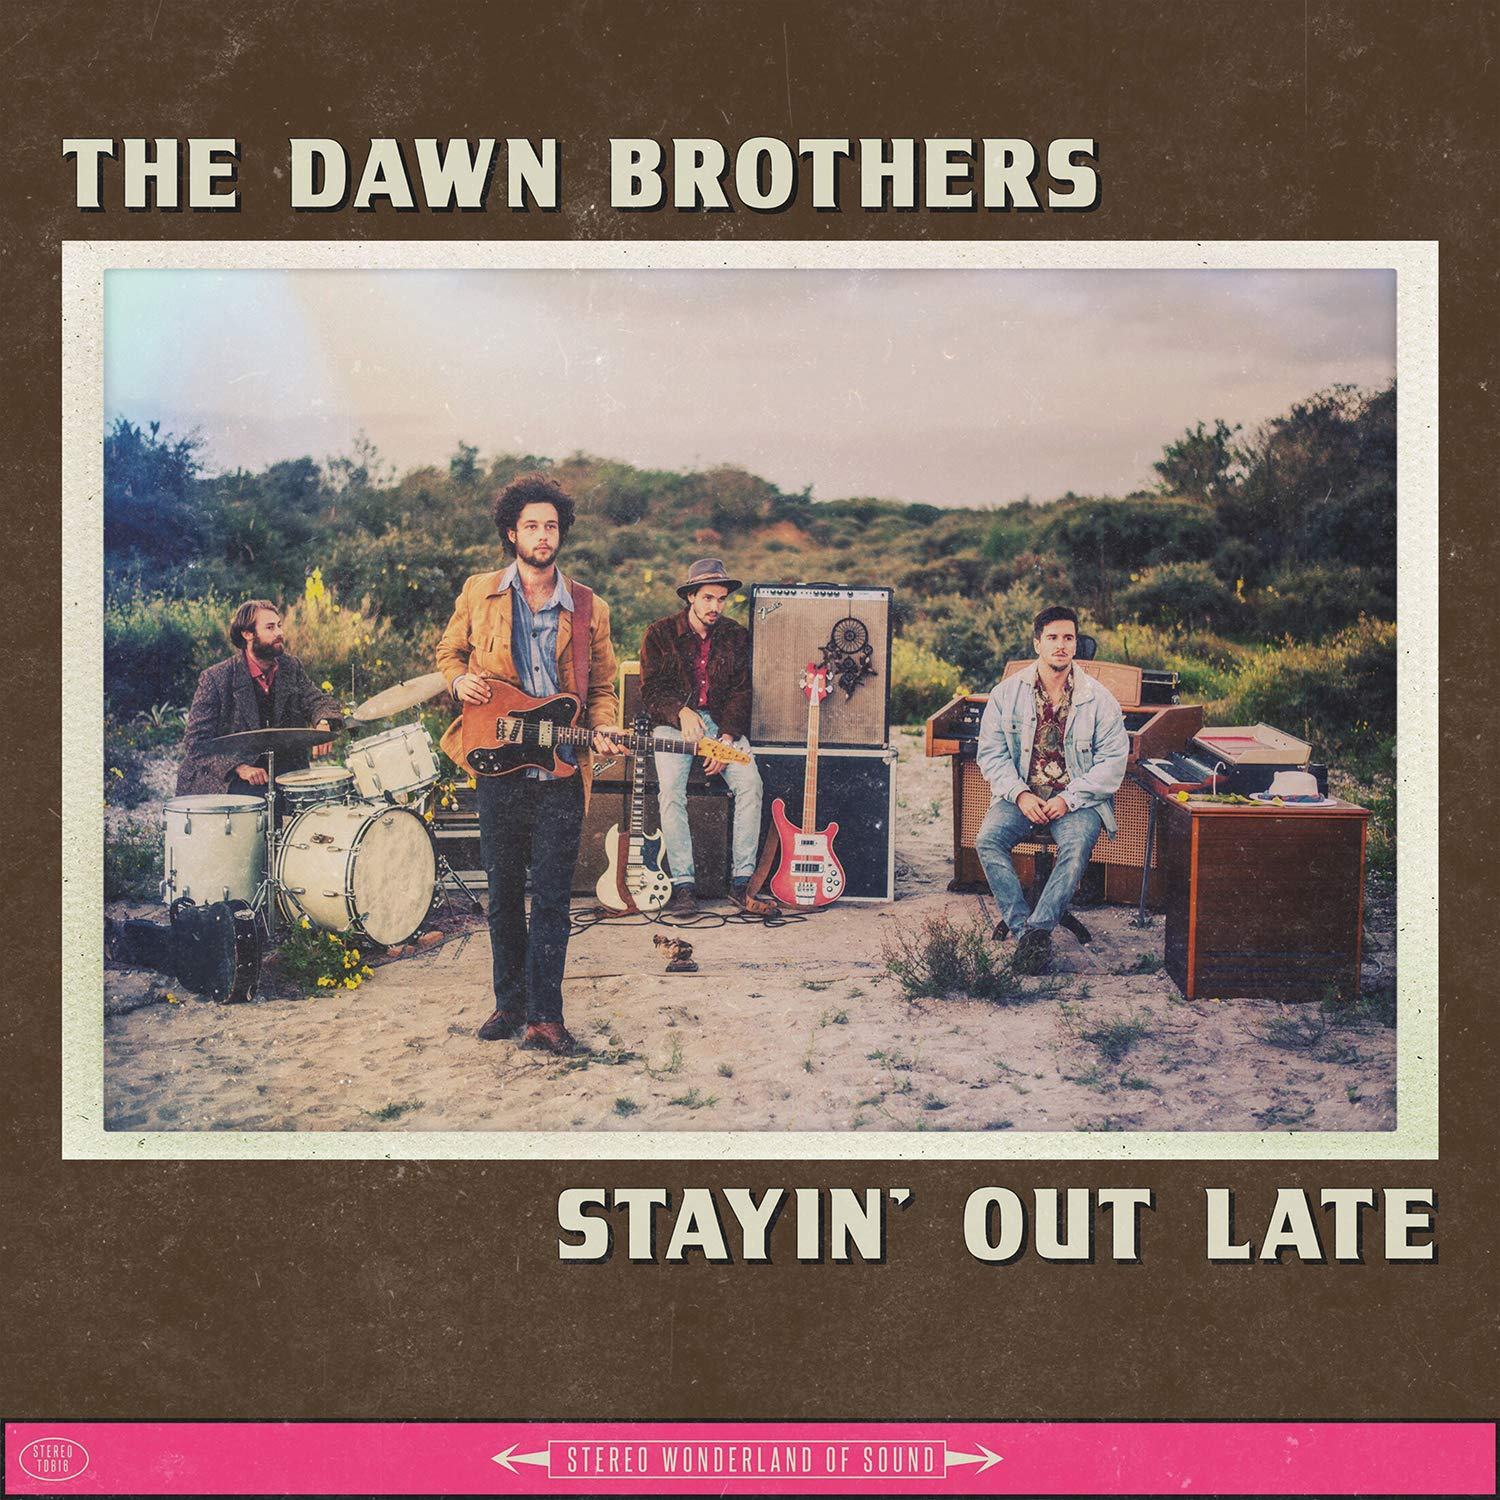 Dawn Brothers - Stayin Out Late [CD] - Urban Vinyl | Records, Headphones, and more.